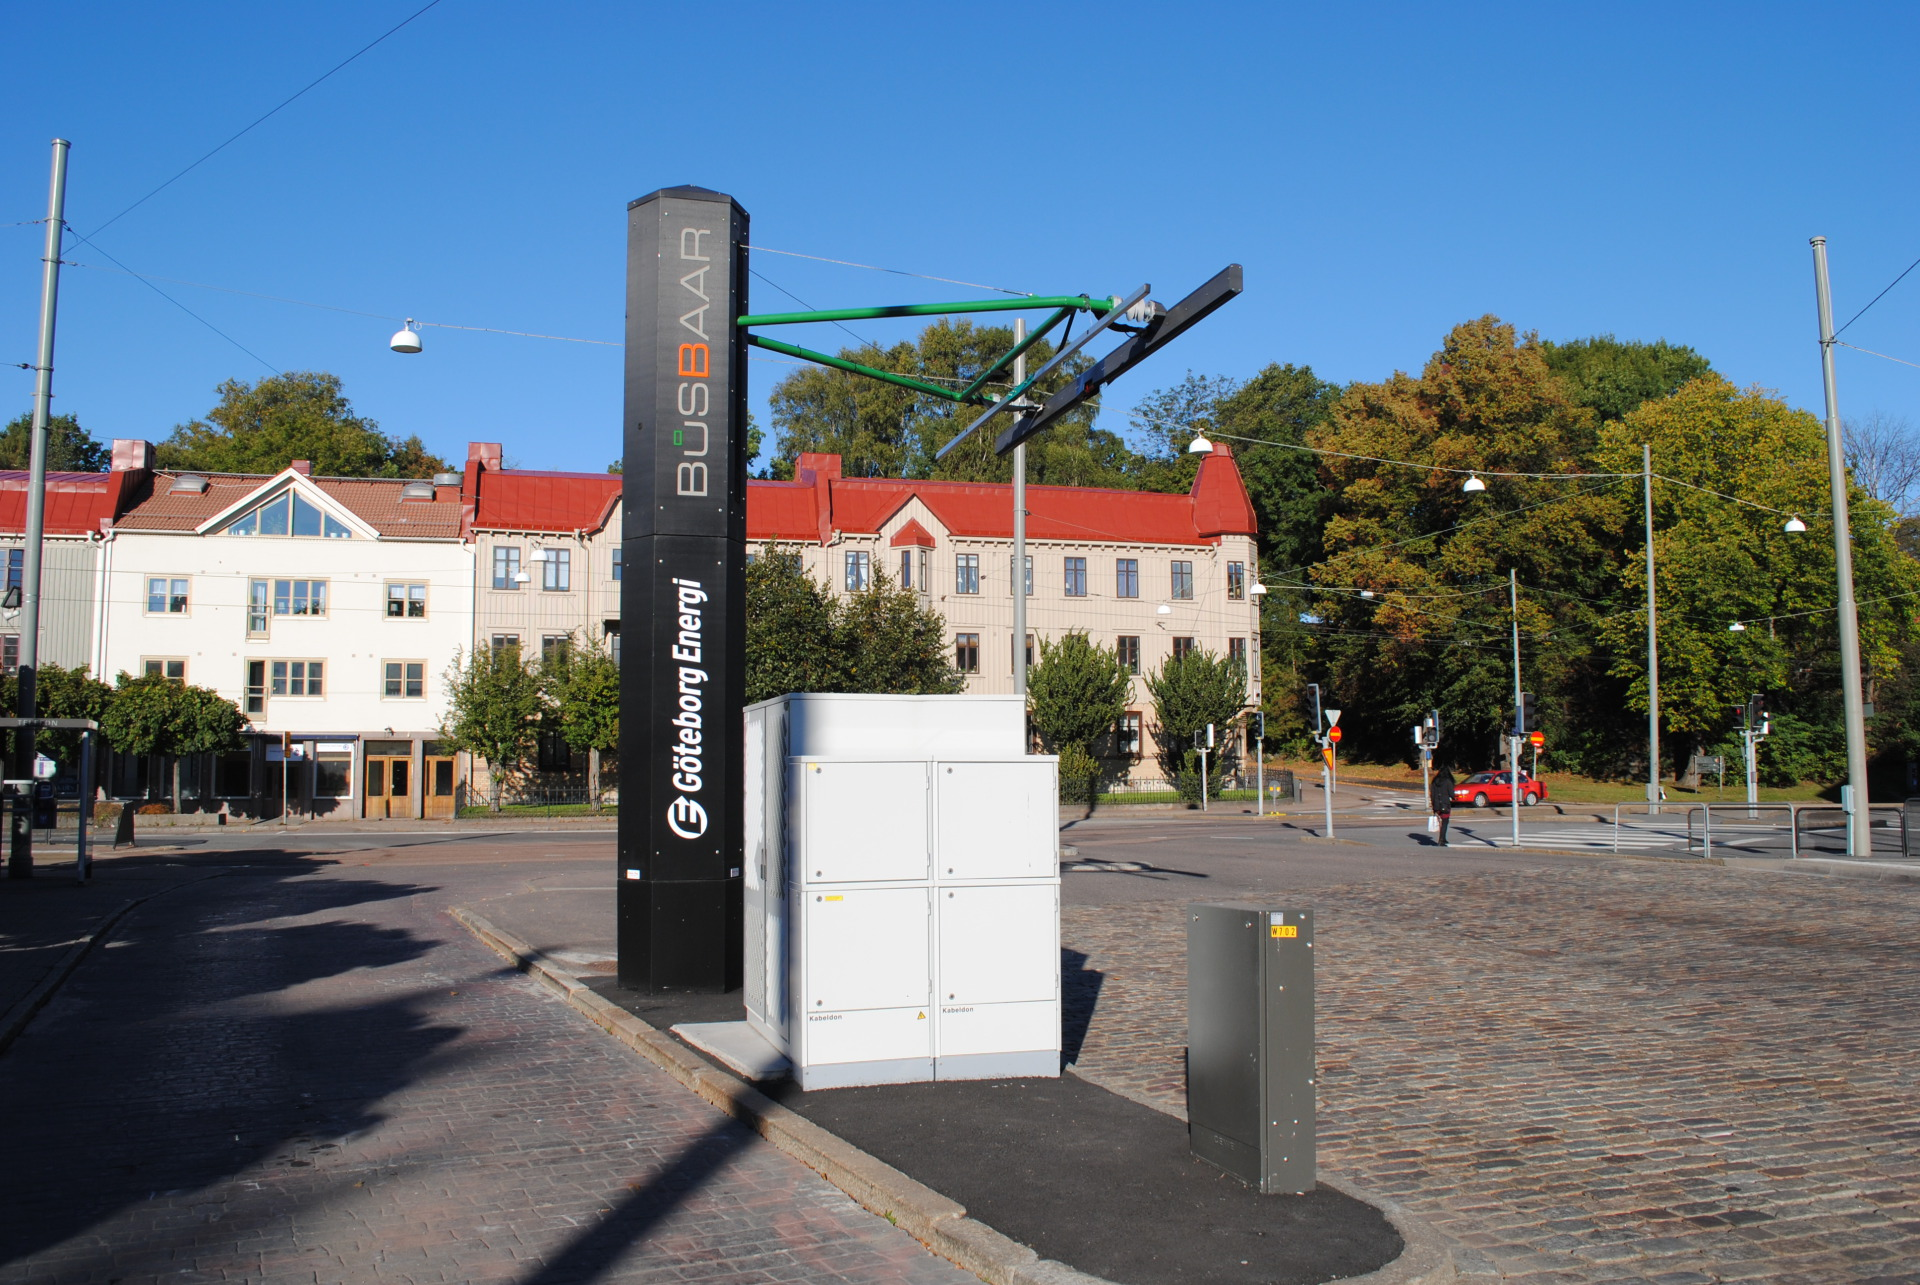 The Opbrid Bůsbaar Curbside Charger